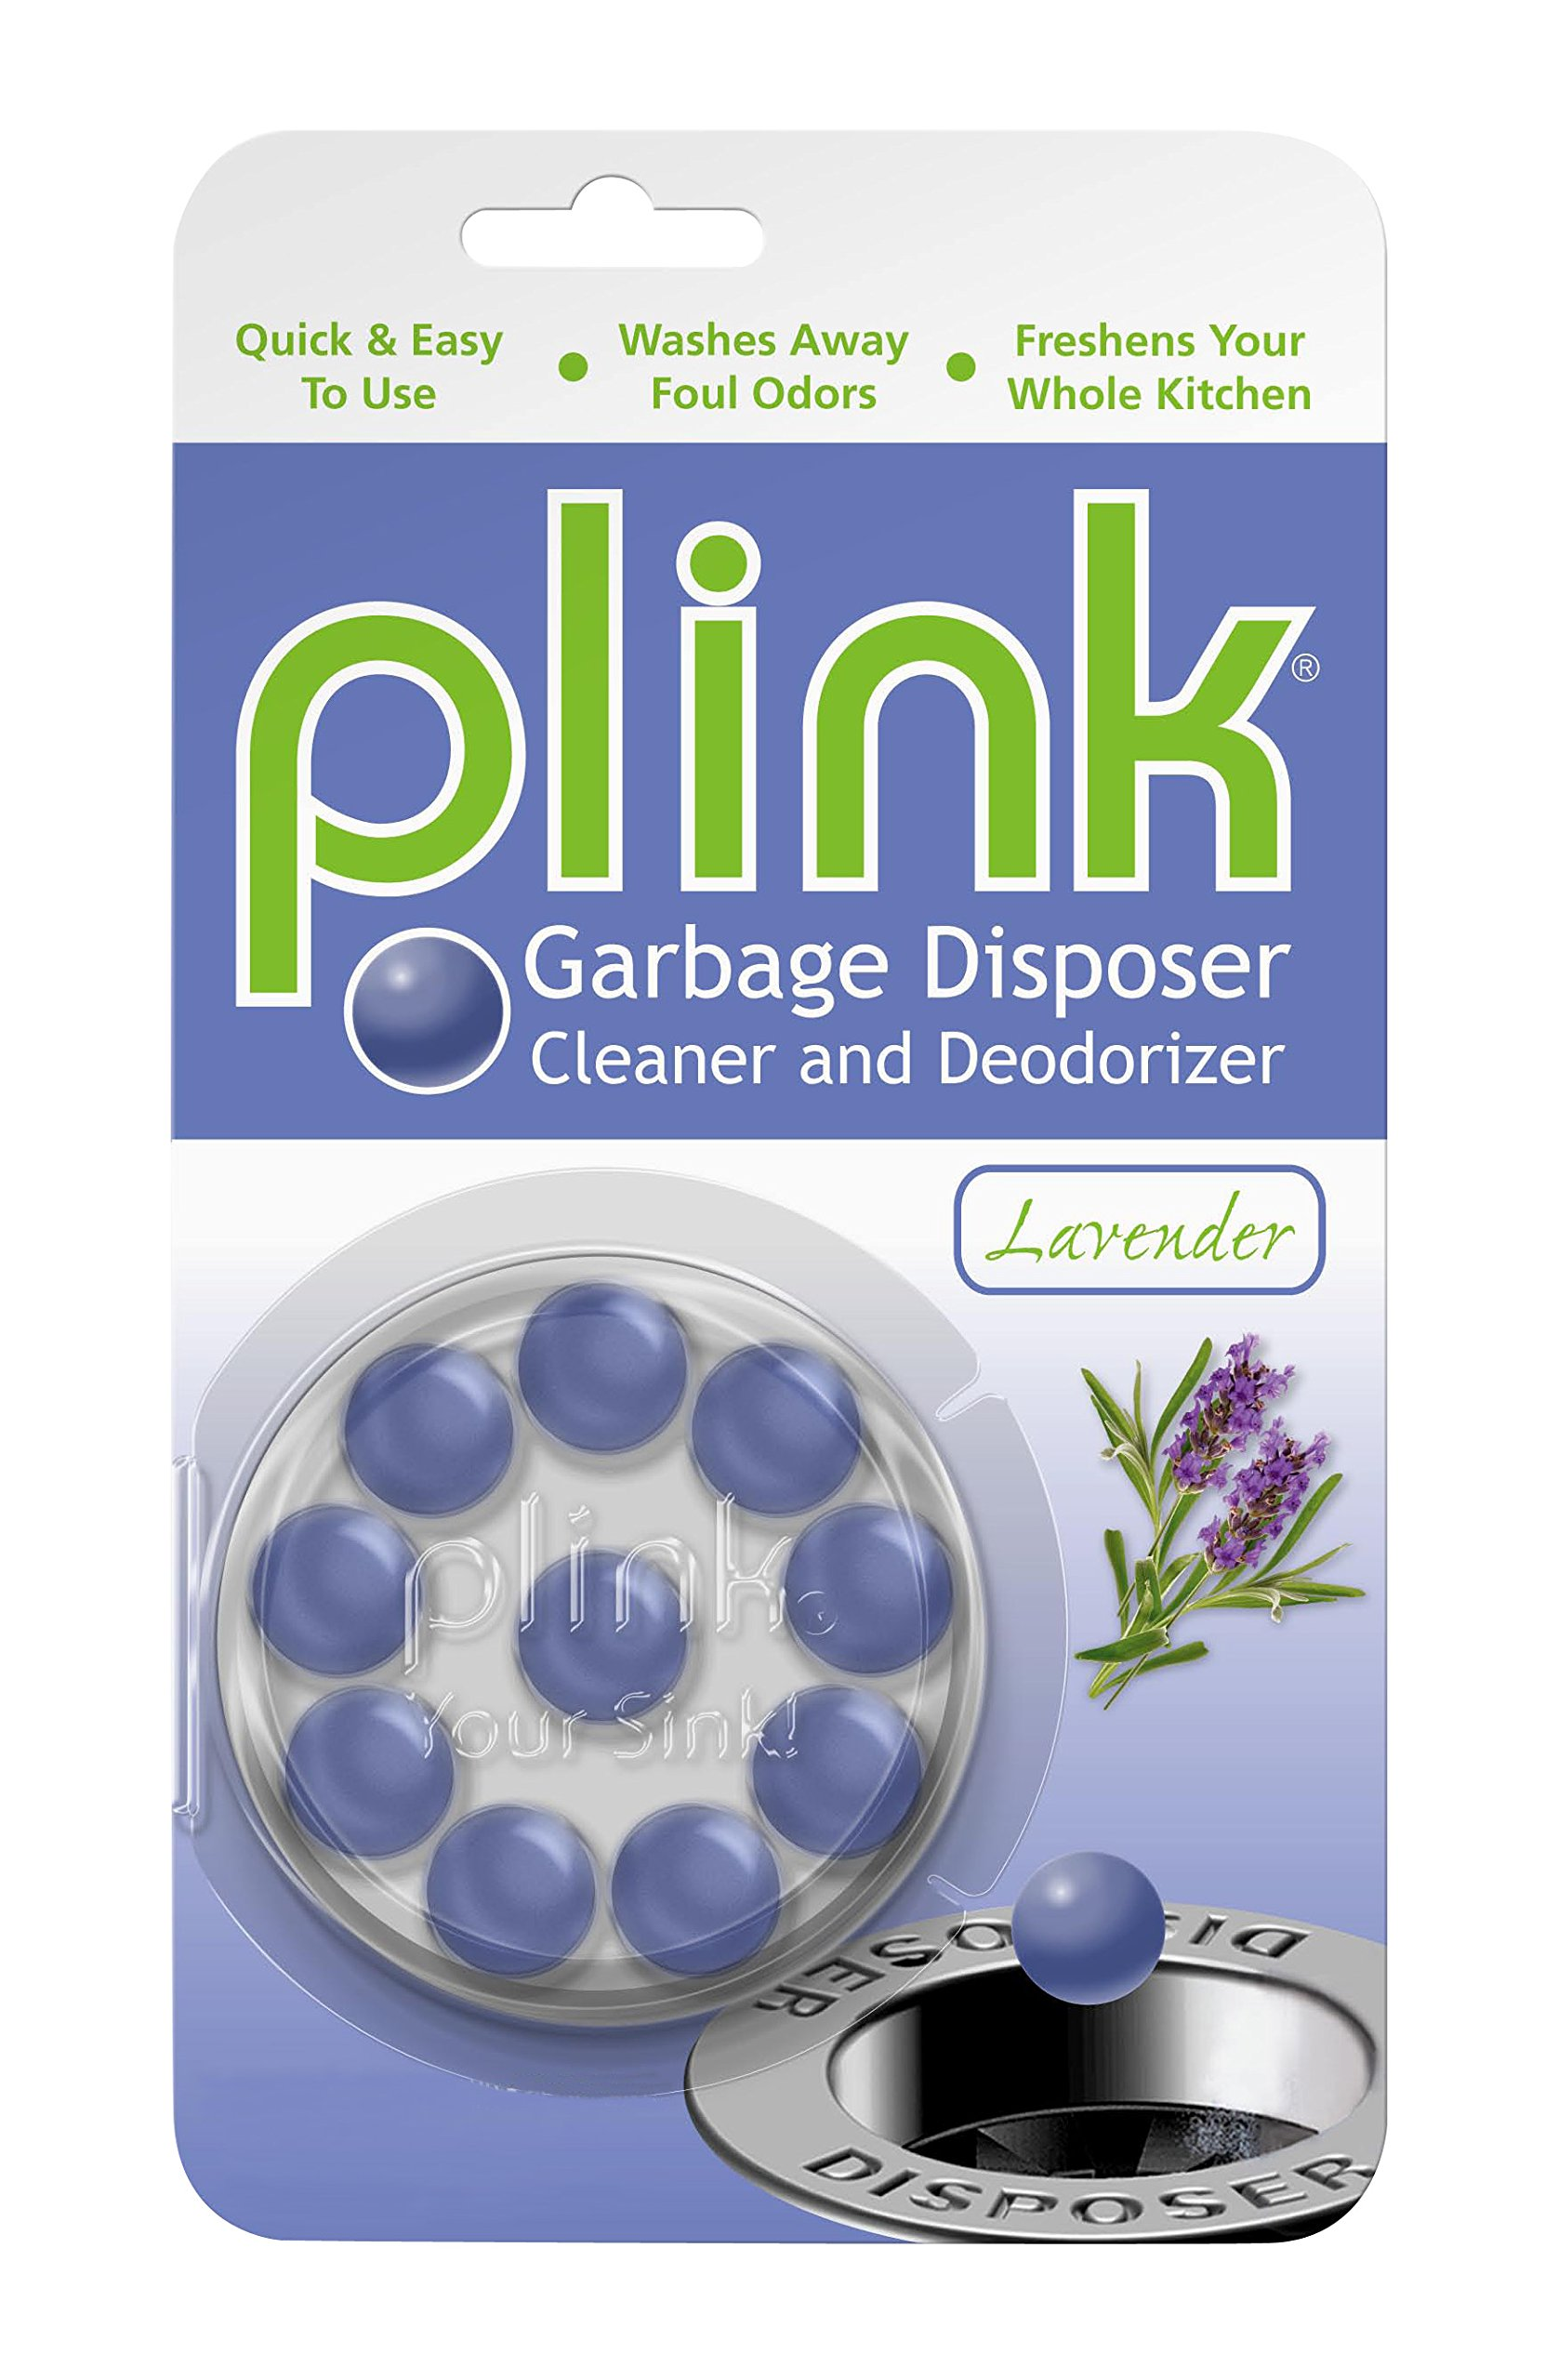 Summit Brands Plink Garbage Disposal Cleaner and Deodorizer, Multi Scent Pack of 3, Value Pack, 30 Cleanings by Summit Brands (Image #4)